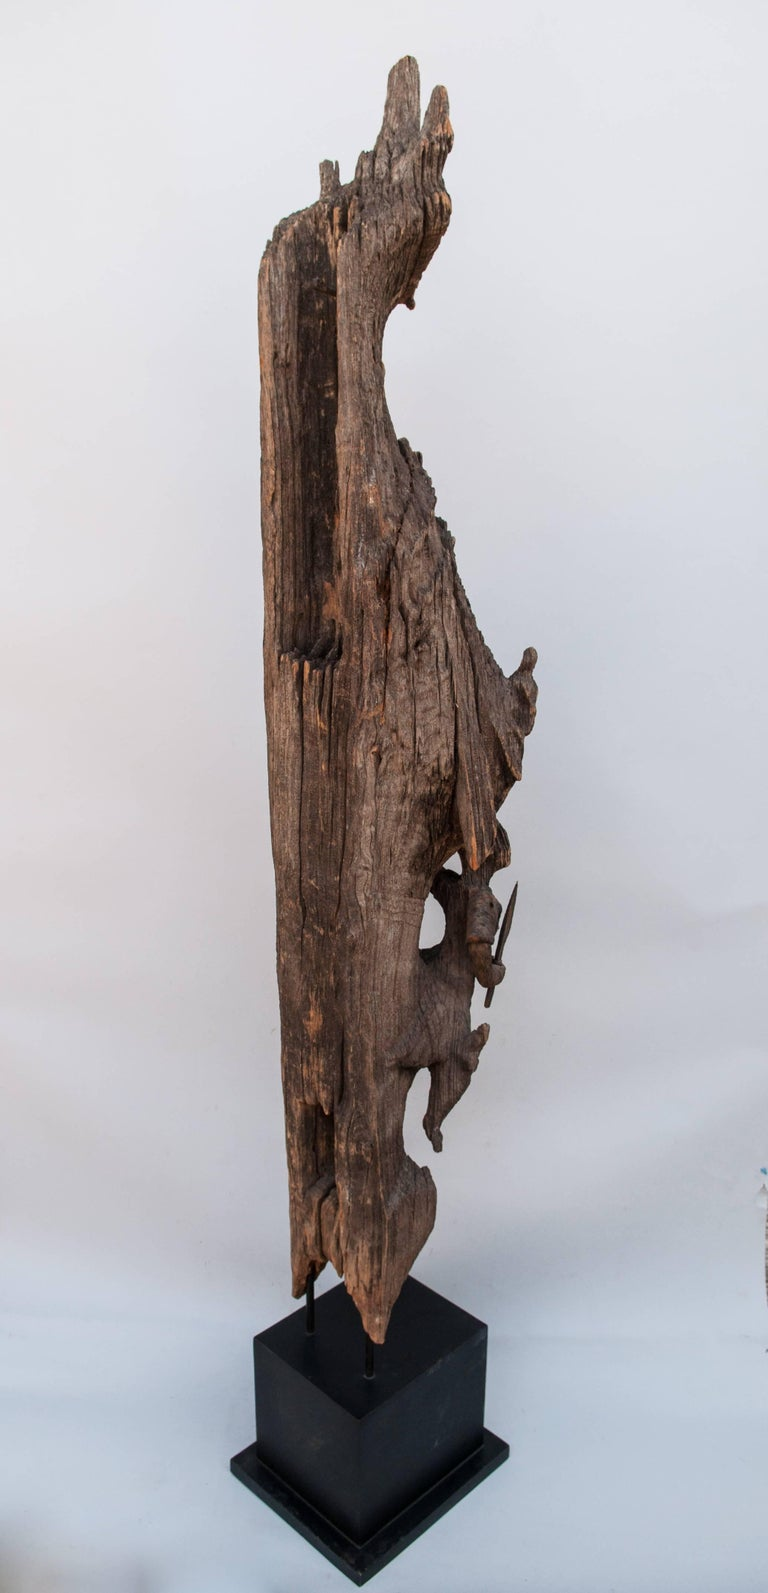 Hand-Carved Chofa Roof Finial from Burma, Carved and Eroded Teak Wood, Early 20th Century For Sale